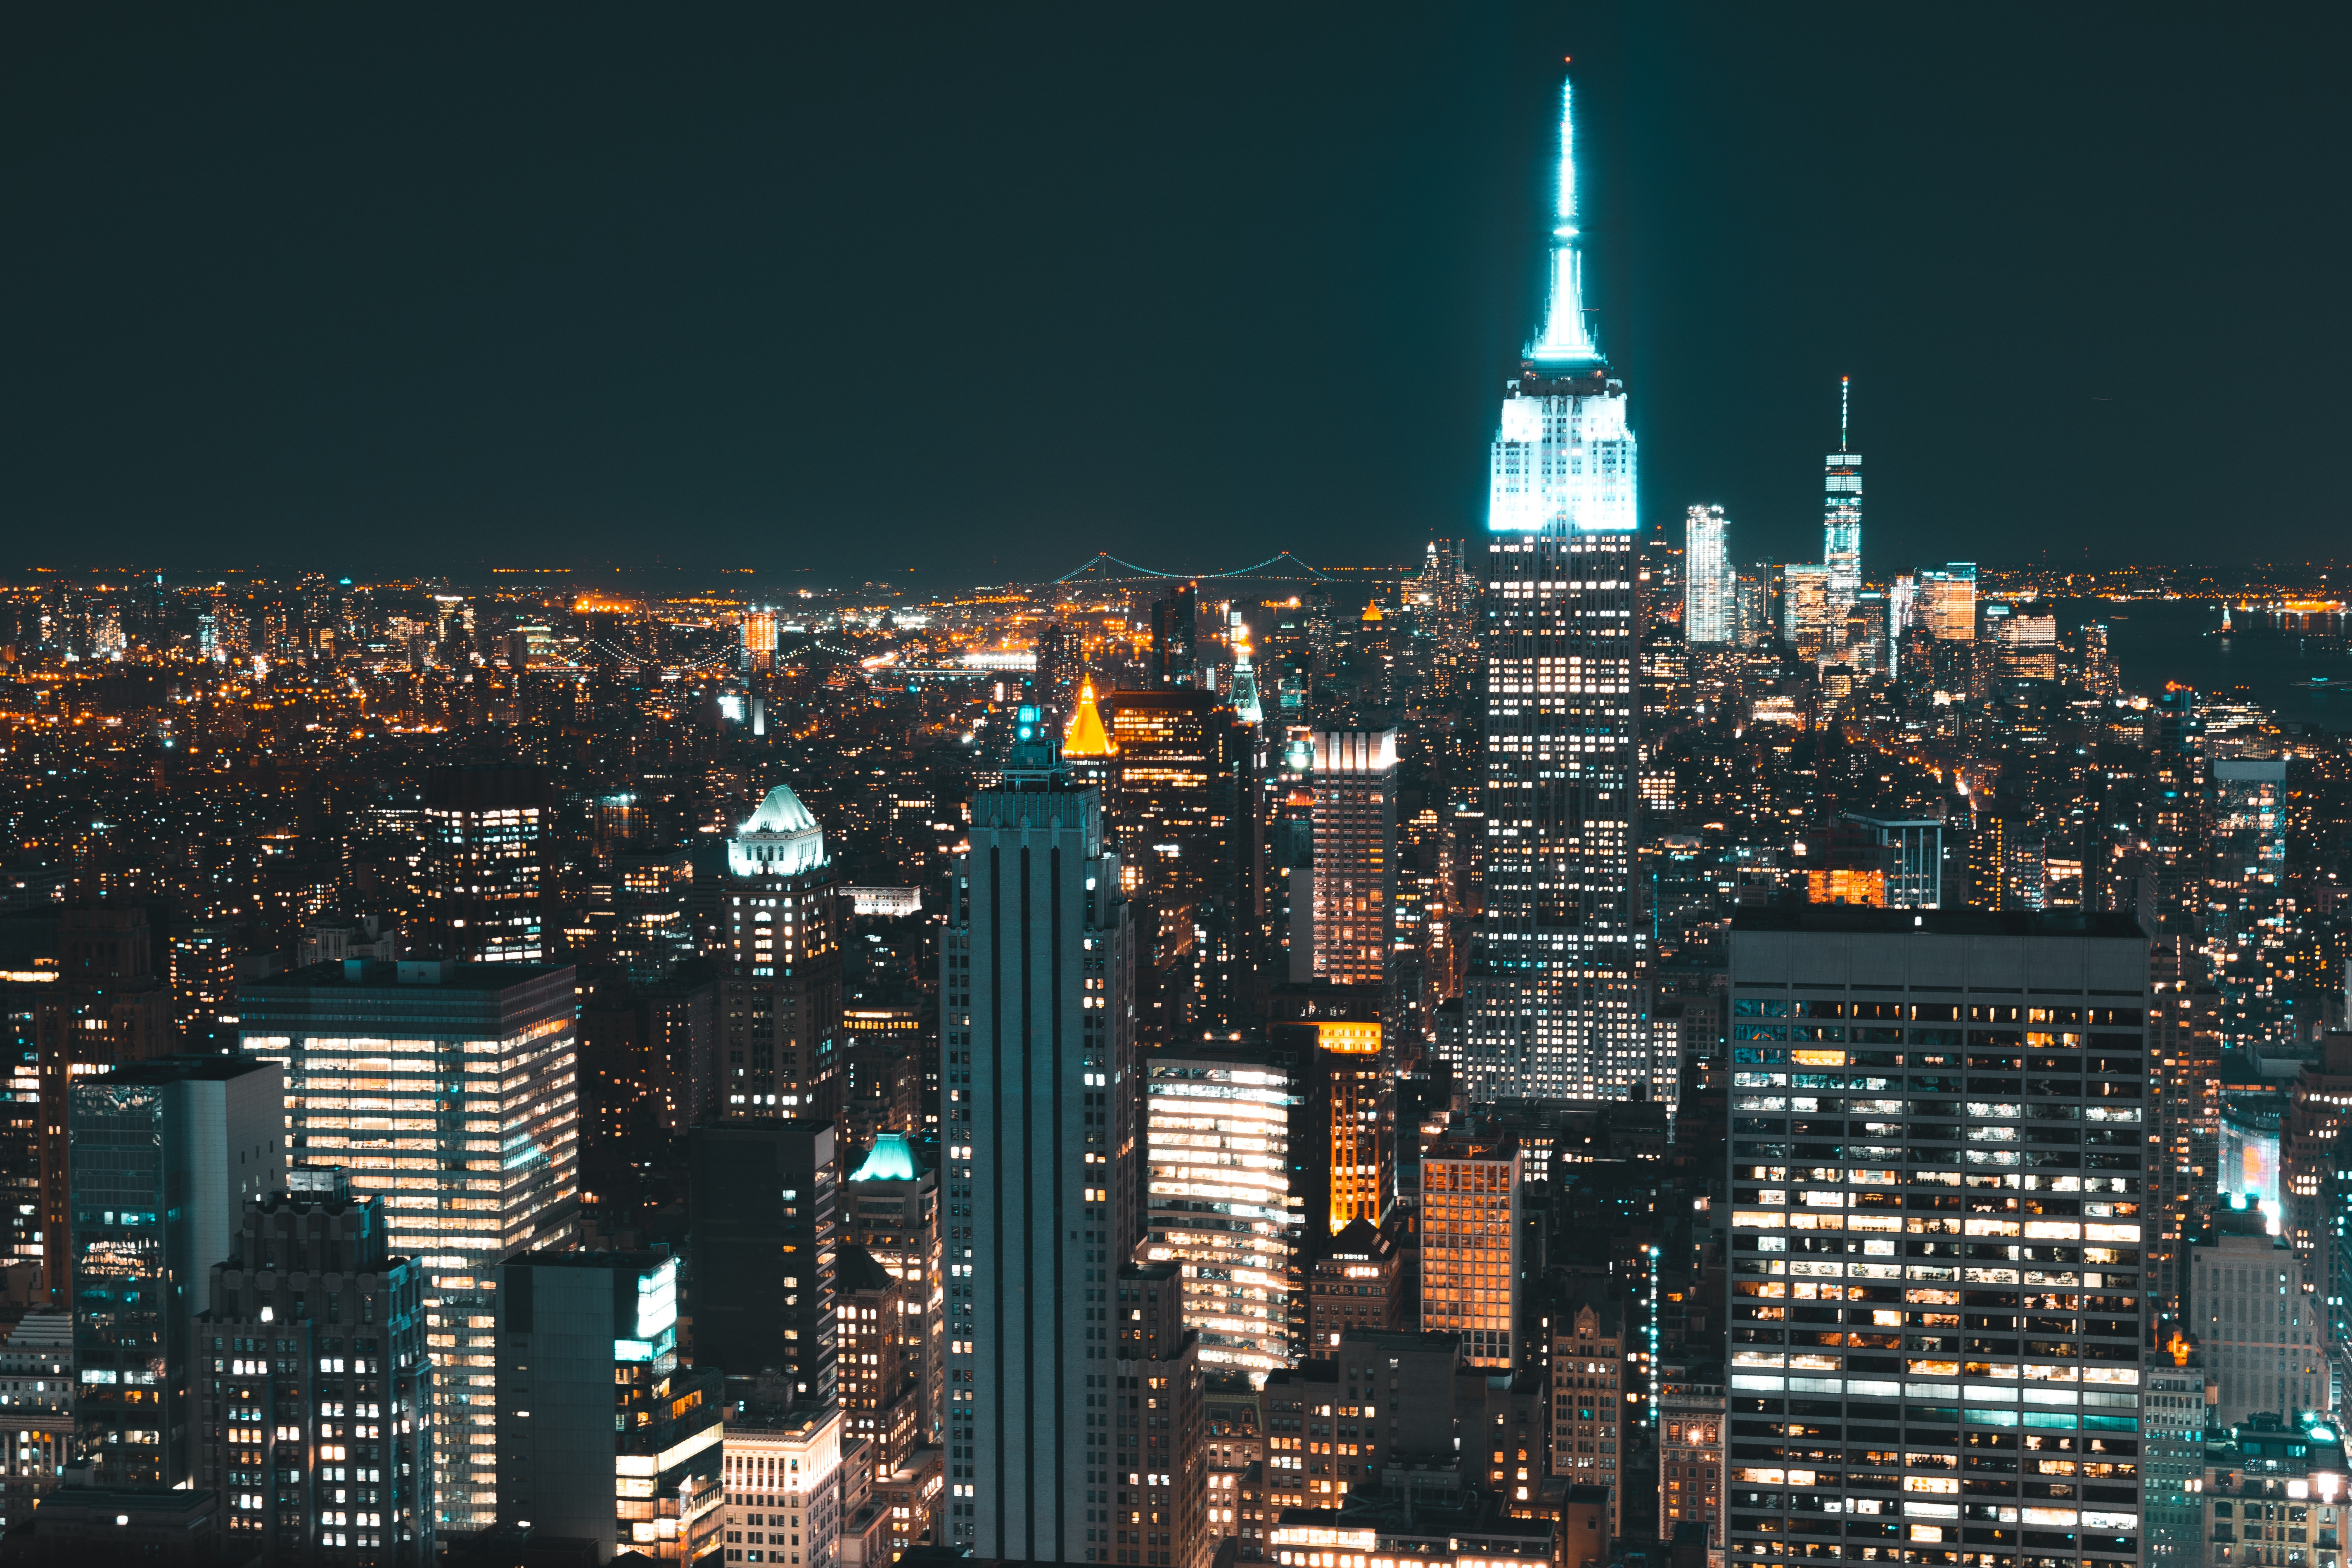 New york city wallpaper pexels free stock photos for Moving from new york to la